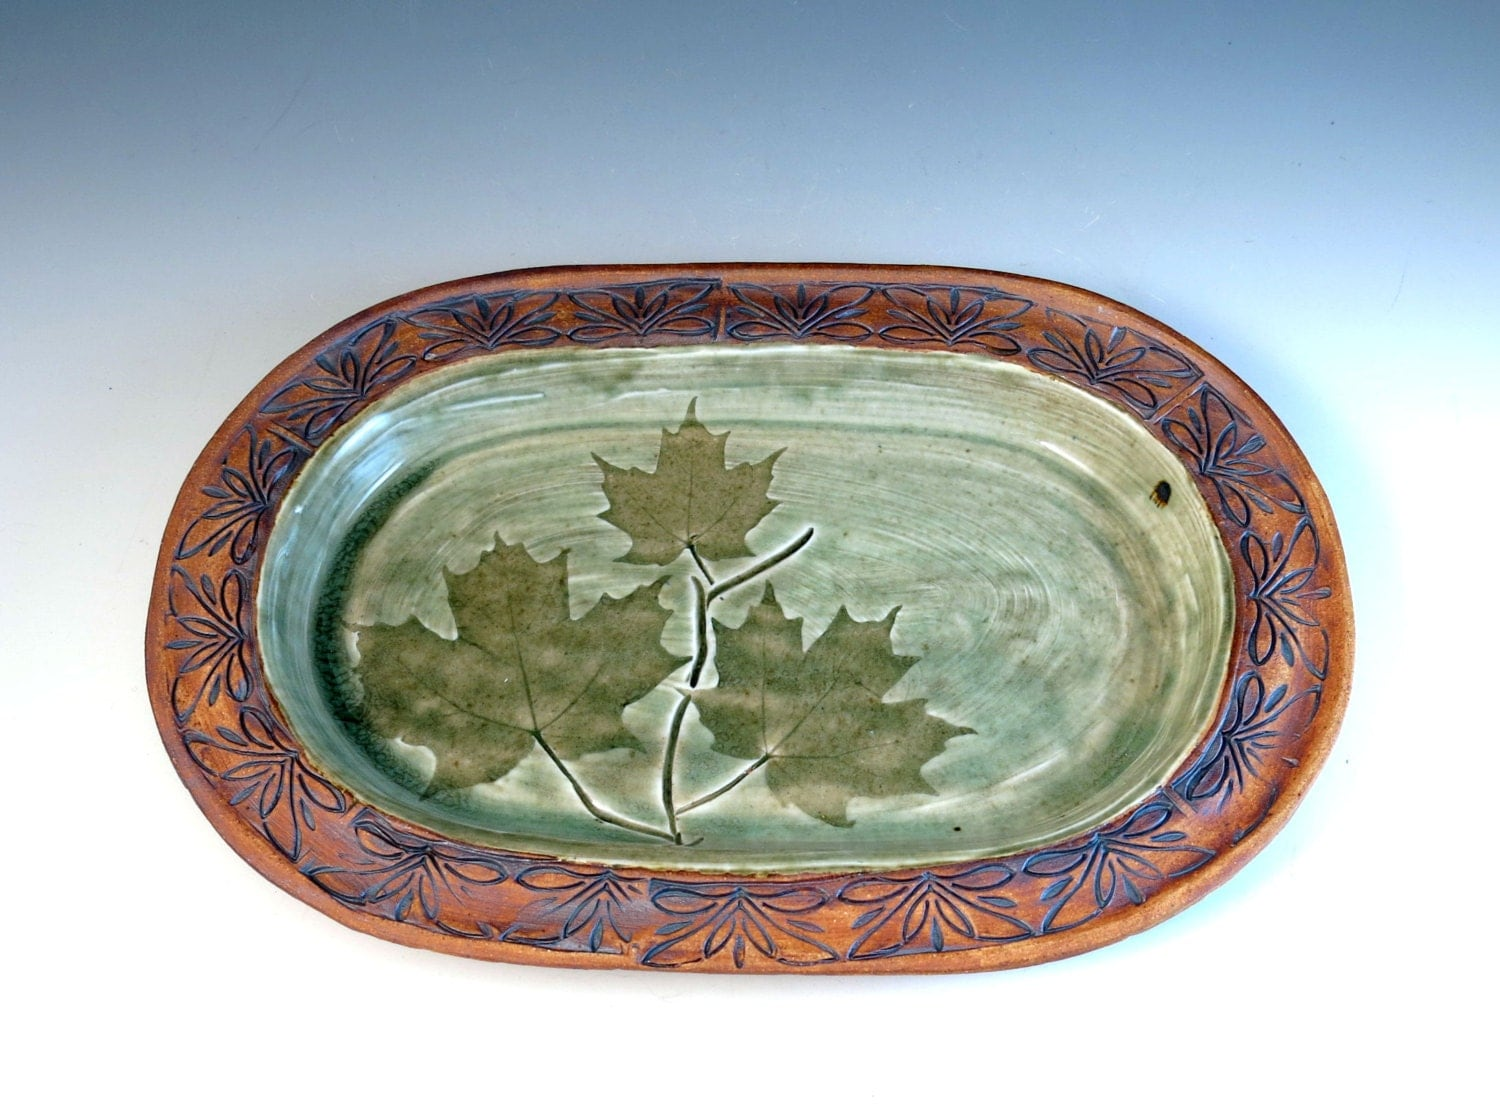 Decorative Ceramic Plate Handmade Pottery By Botanic2ceramic